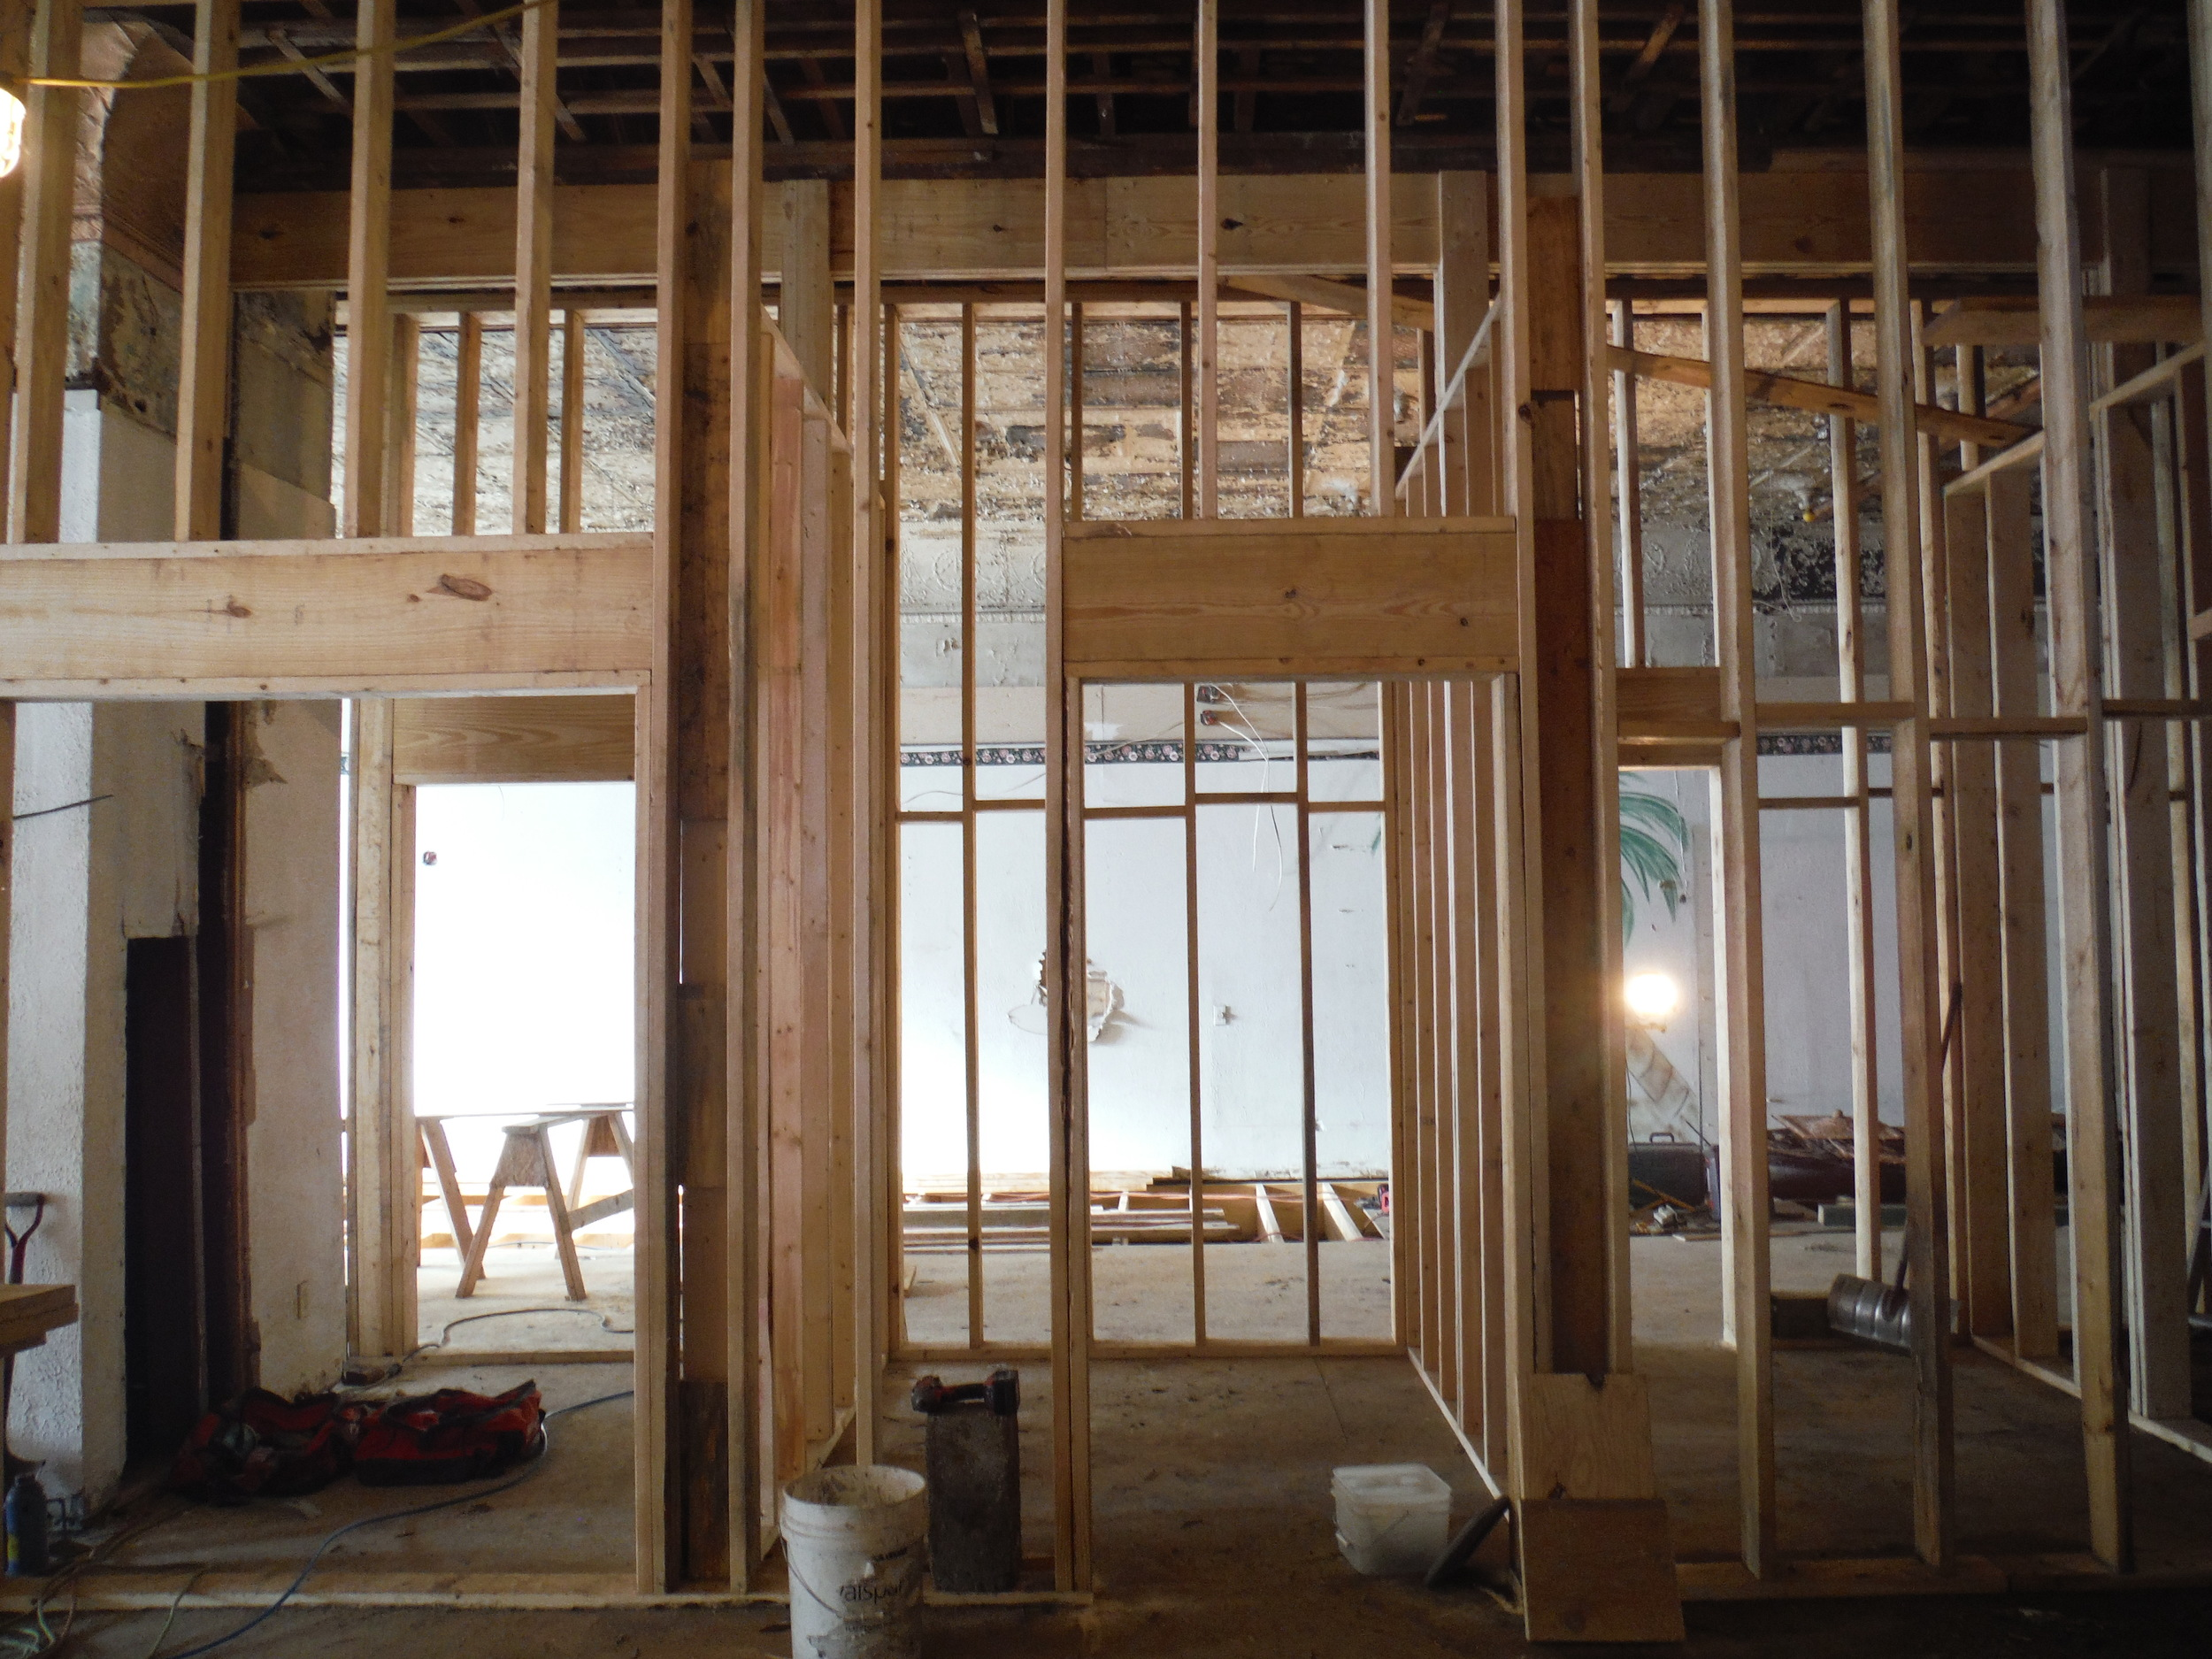 These newly-framed rooms along the center of the building are destined to become bathrooms, offices, and storage spaces.